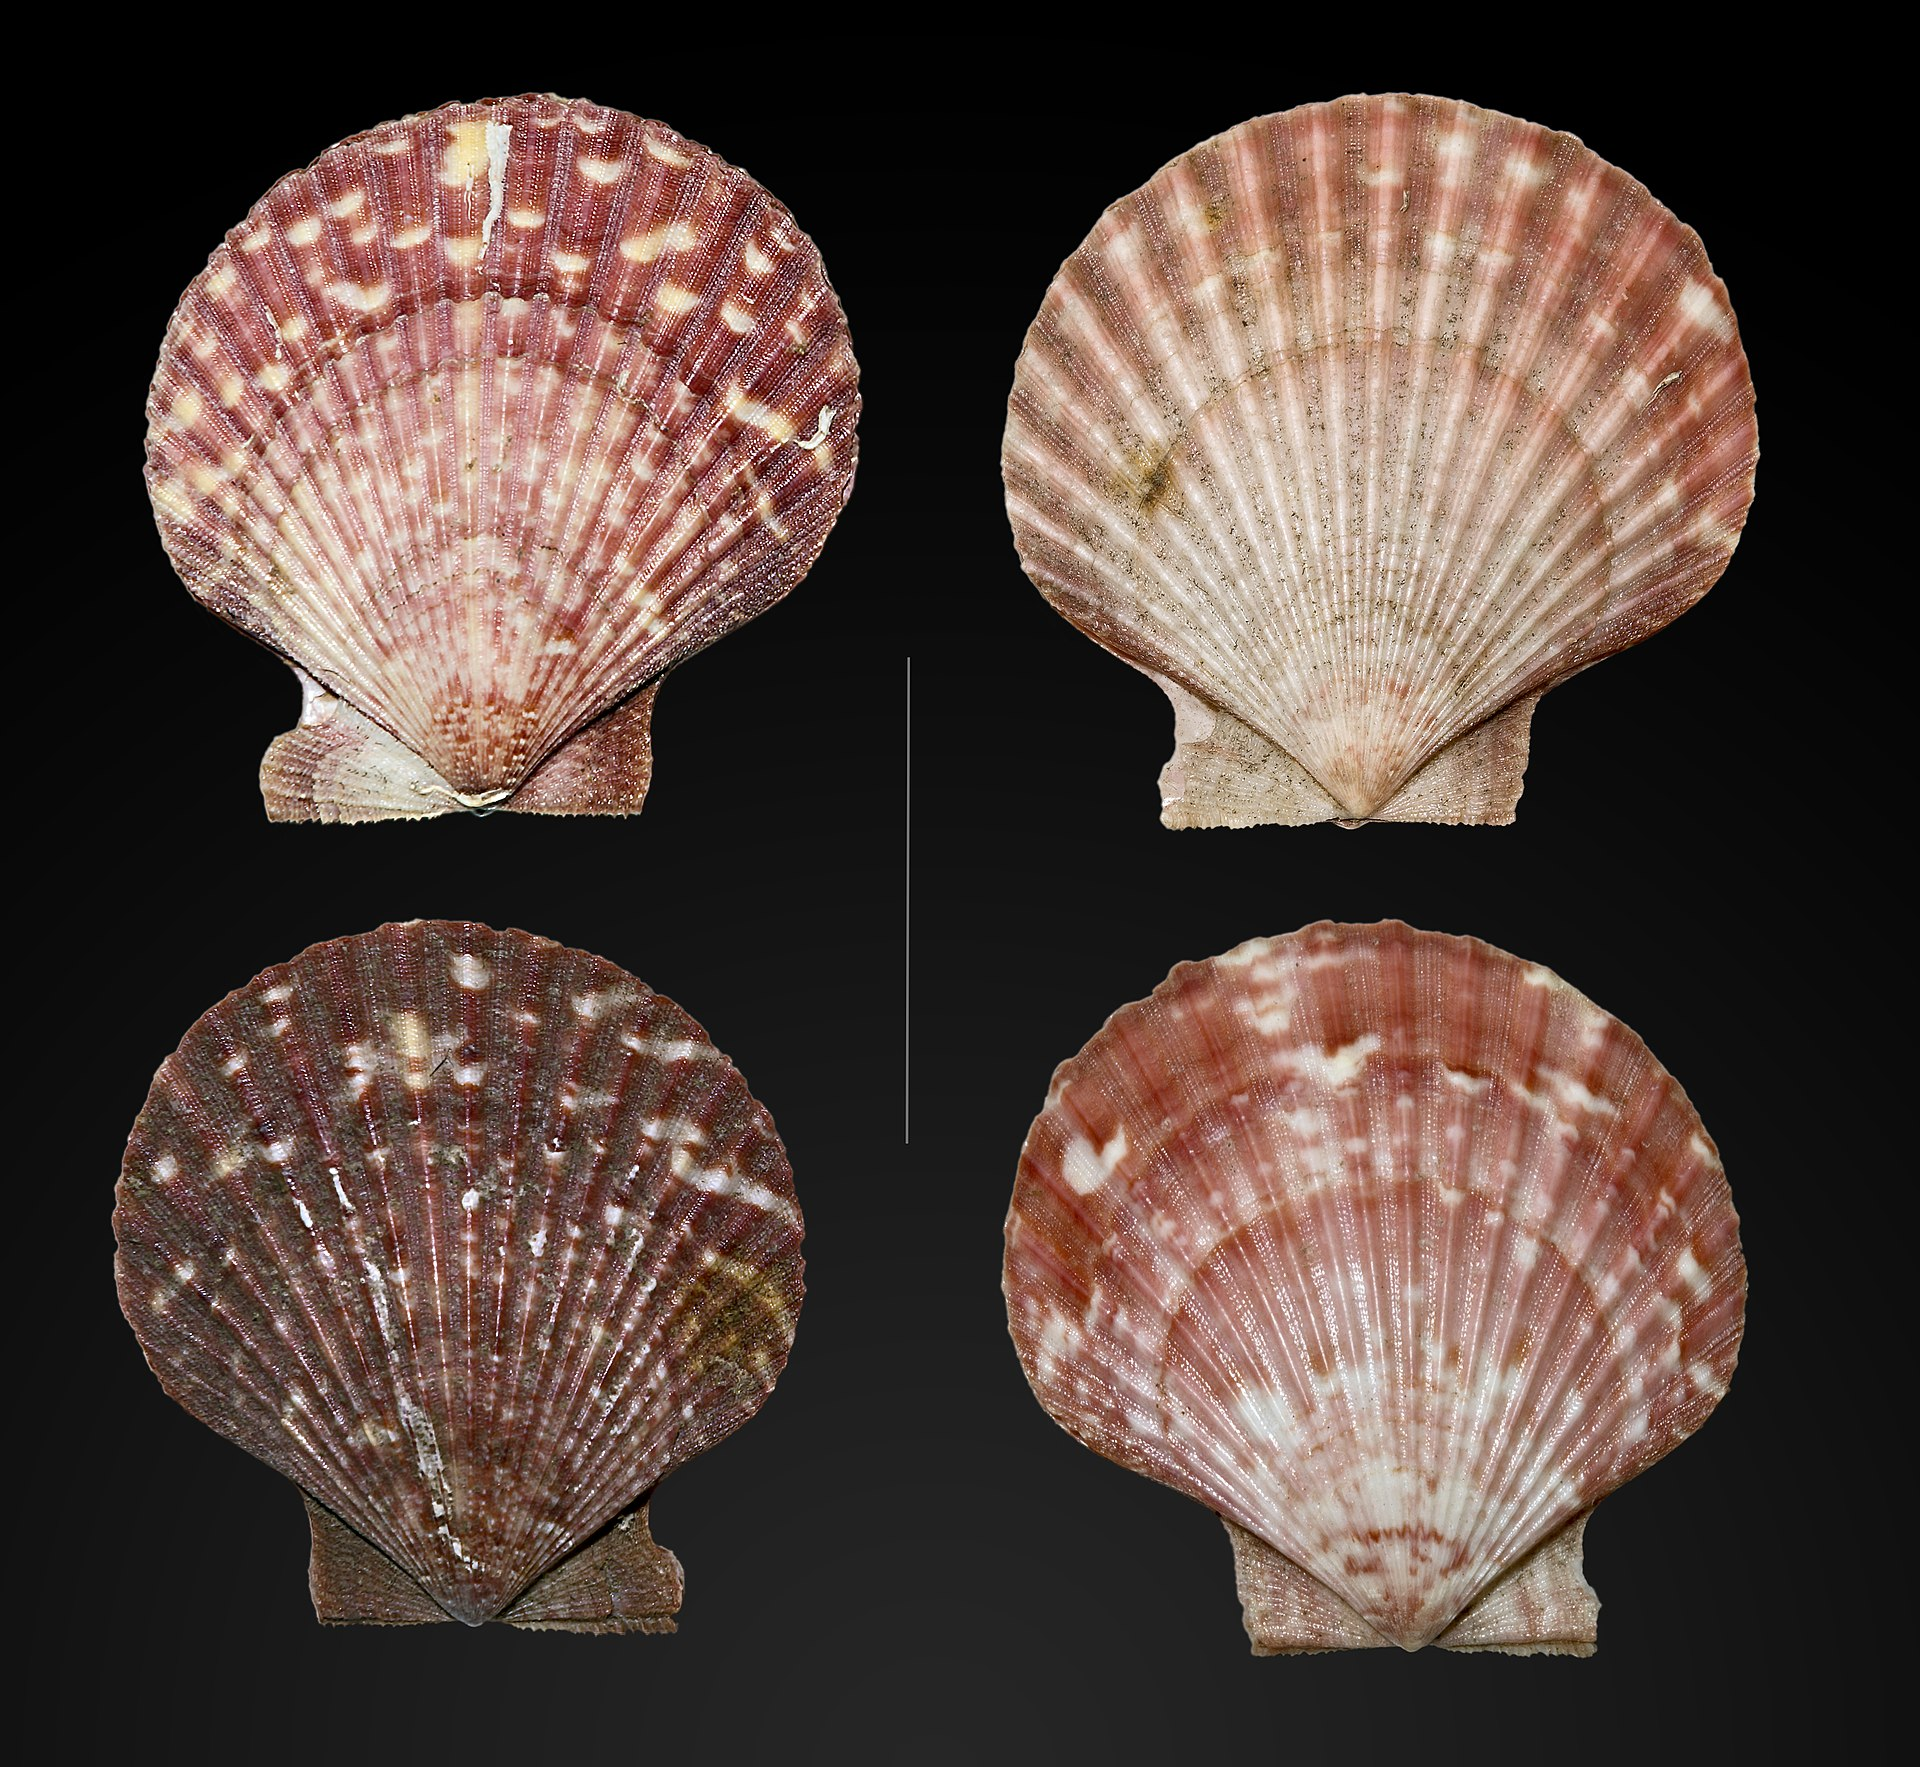 Types Of Threads >> Queen scallop - Wikipedia